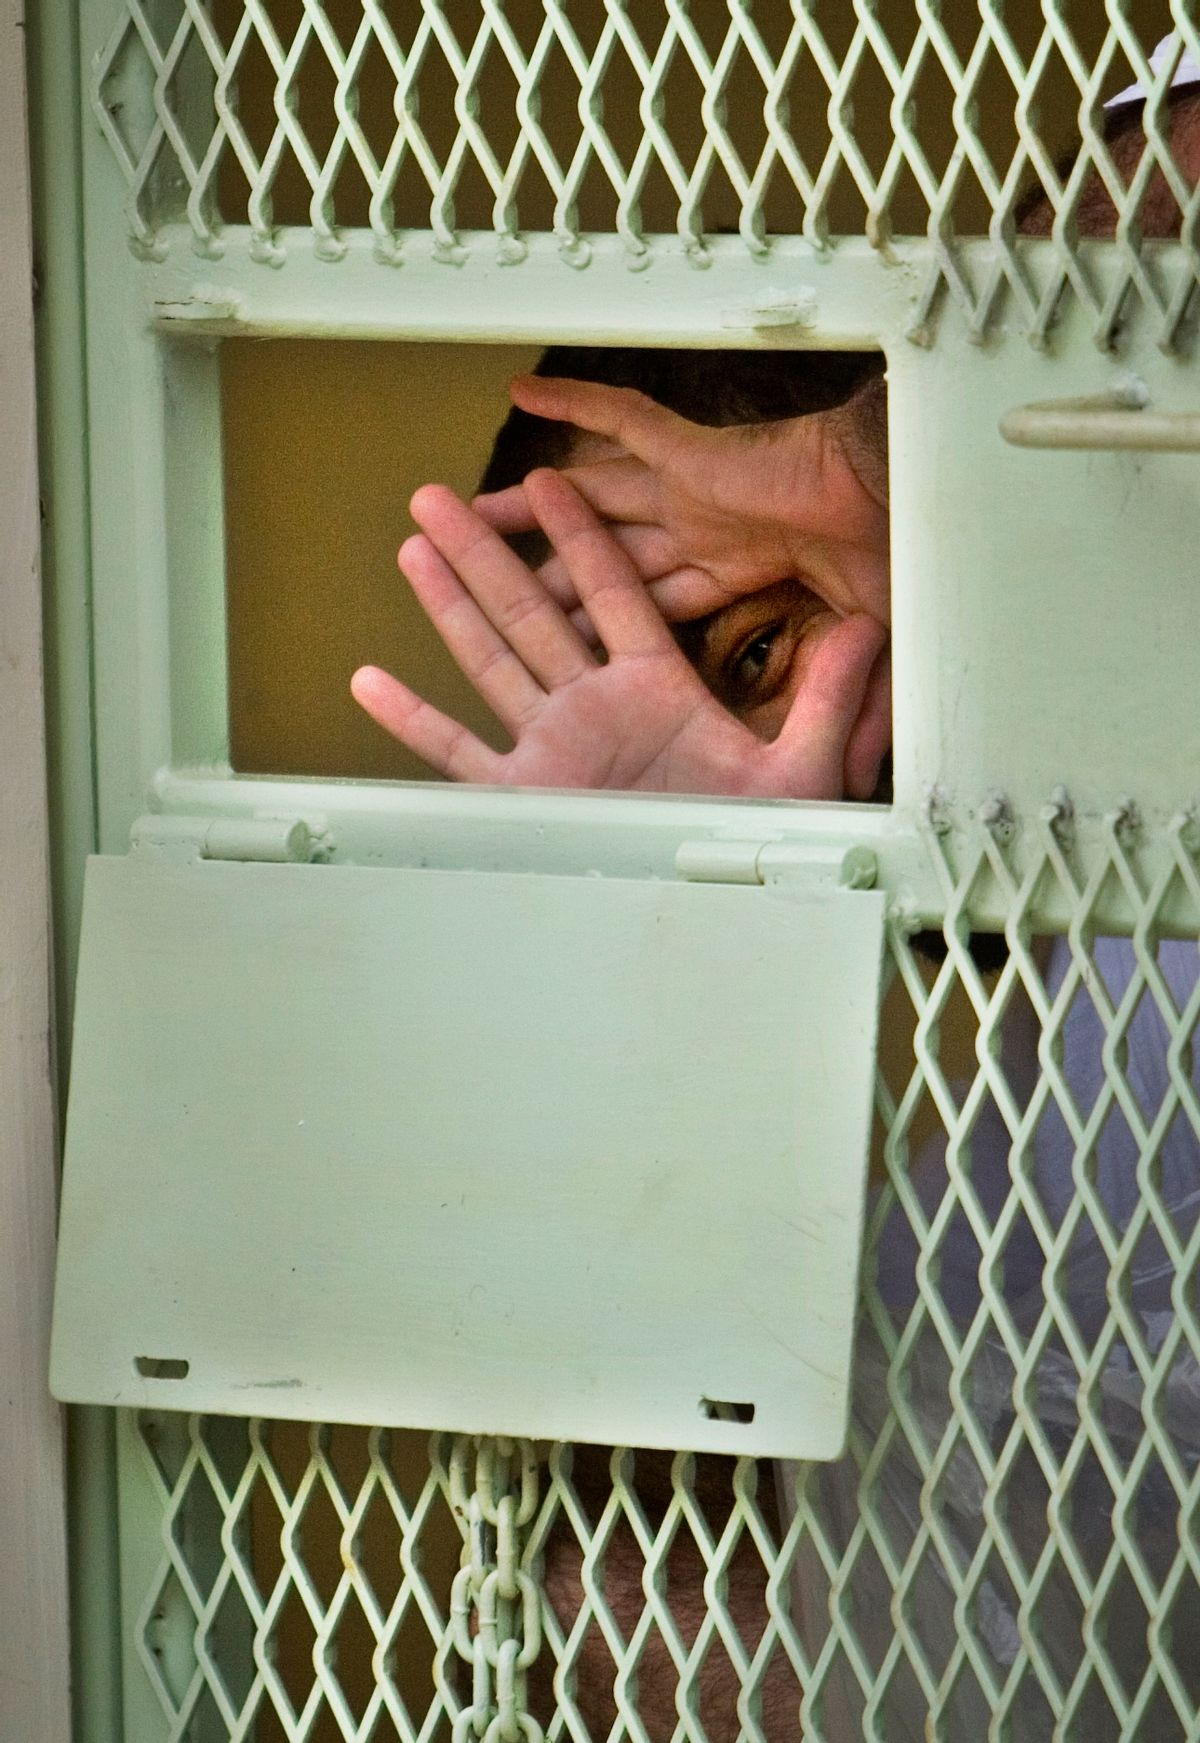 **FILE** In this Nov. 18, 2008 file photo, reviewed by the U.S. Military, a Guantanamo detainee peers through his hands from inside his cell at the Camp Echo detention facility at the U.S. Naval Base, in Guantanamo Bay, Cuba. A U.S. appeals court has overturned a ruling, Wednesday, Feb. 18, 2009, that would have transferred 17 Guantanamo Bay detainees to the United States. The men have been cleared for release from Guantanamo, but the United States will not send them home to China for fear they will be tortured. So they remain in prison while the U.S. figures out what to do with them. (AP Photo/Brennan Linsley, File) (Associated Press)